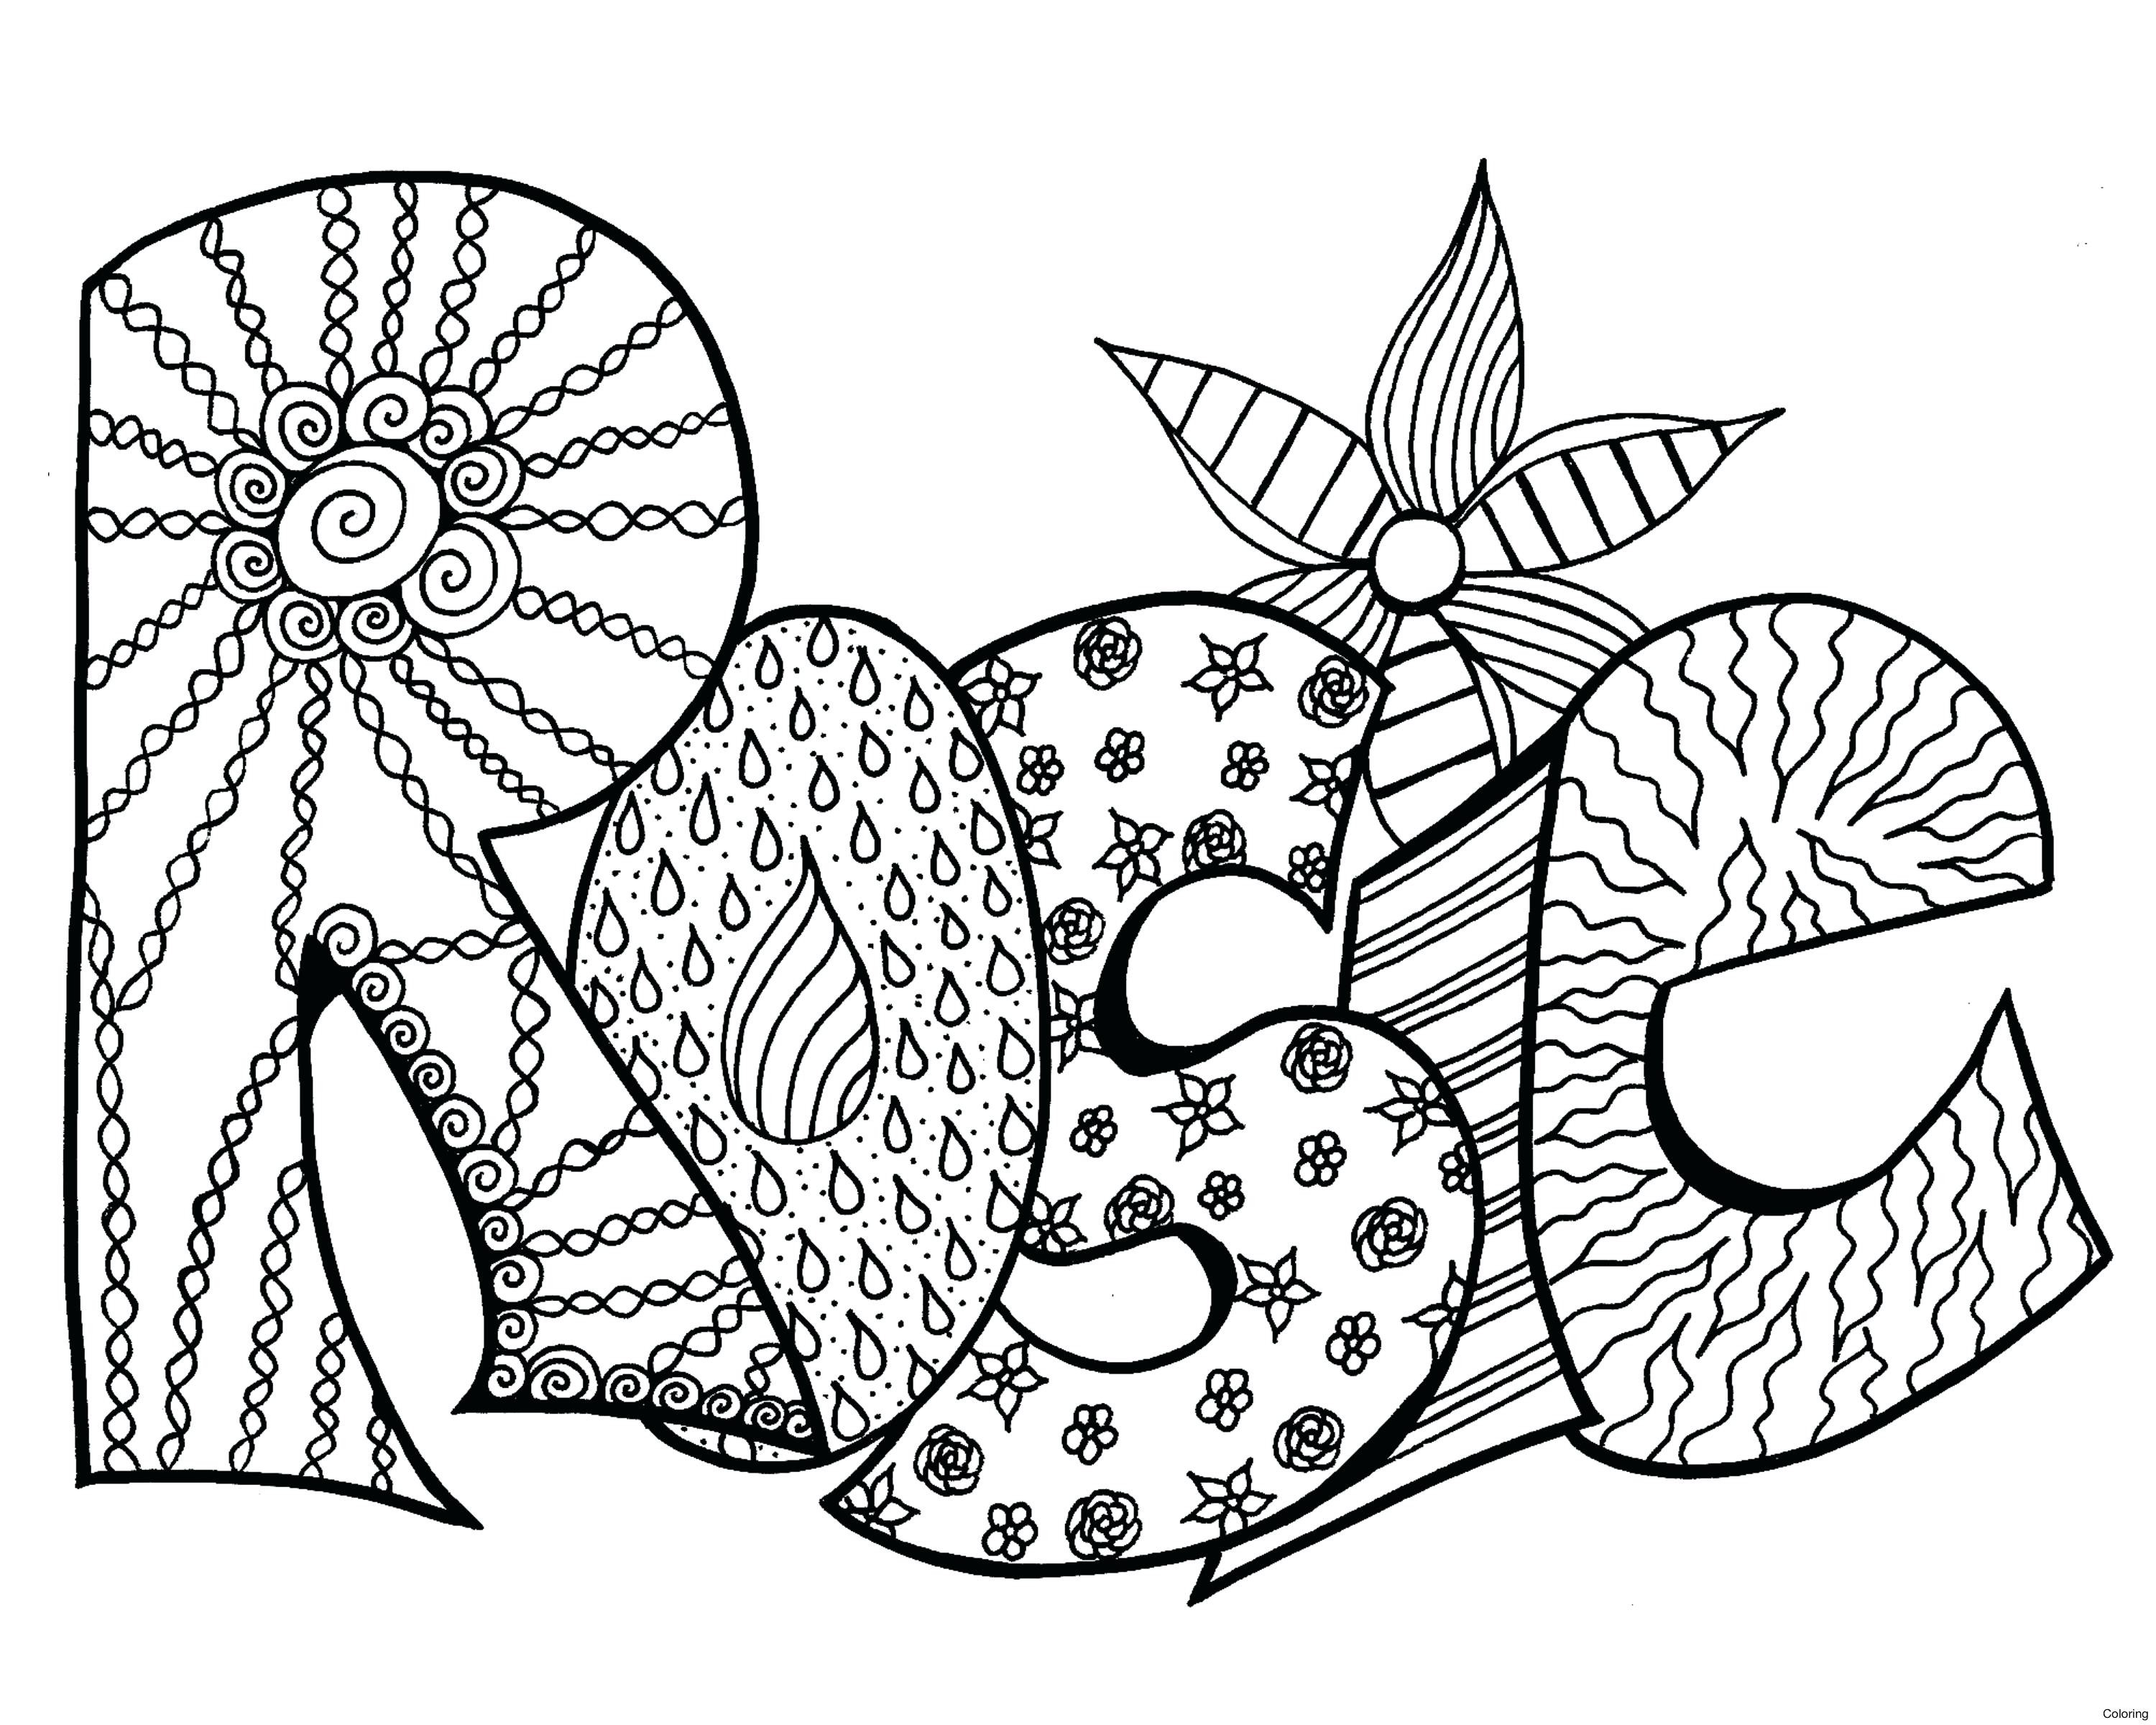 Custom Coloring Pages at GetDrawings.com | Free for personal ...